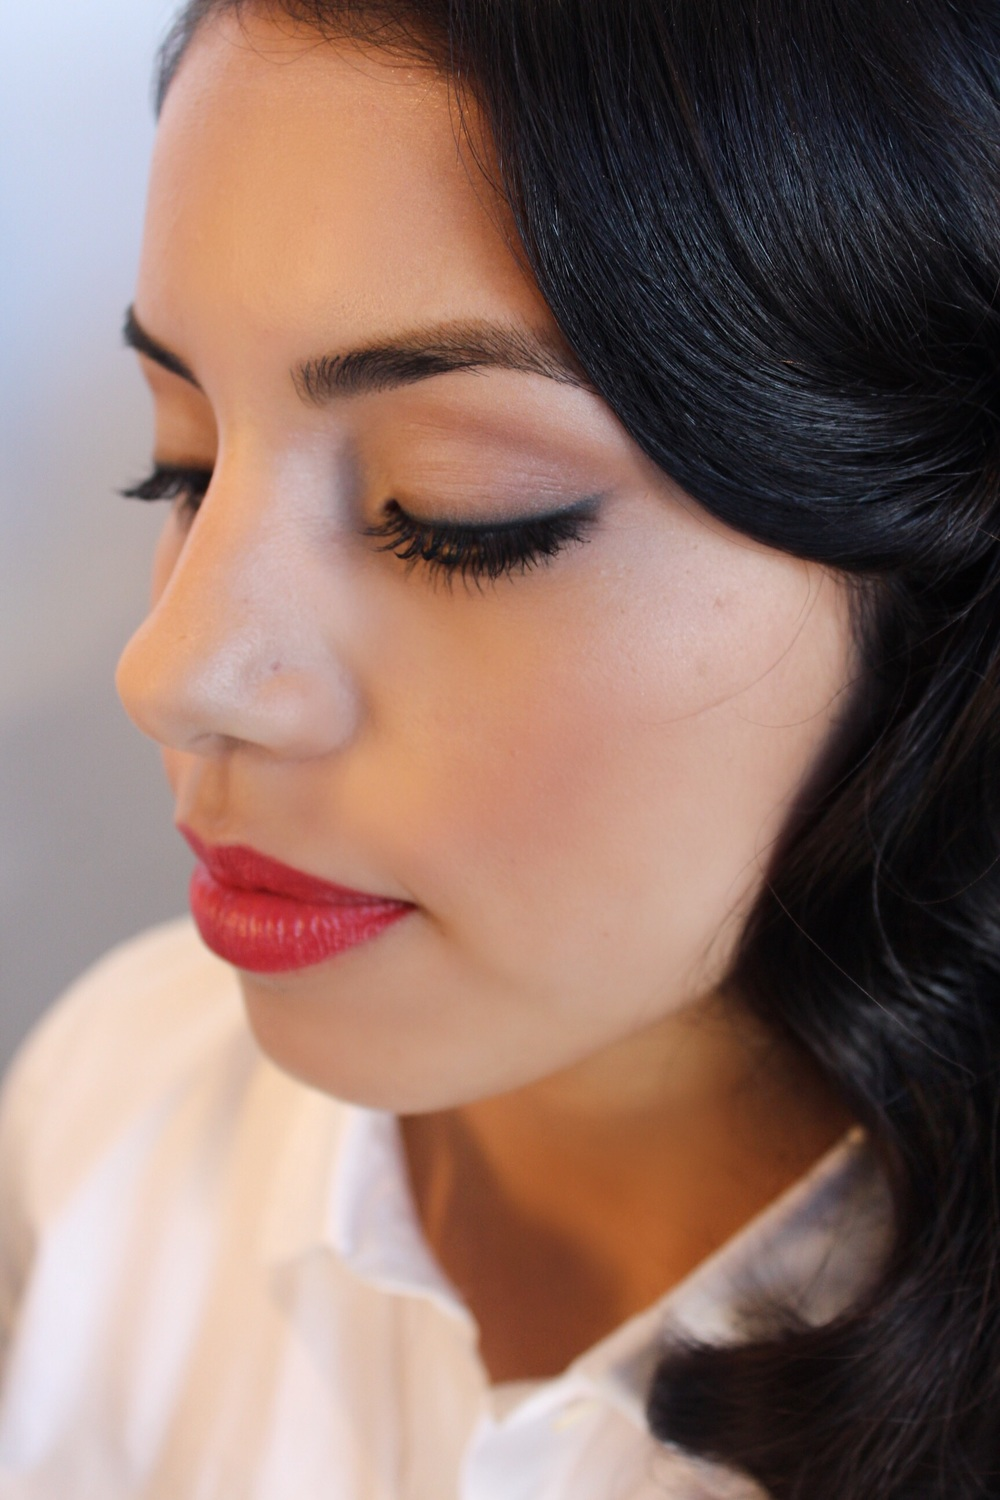 Bold Aveda lip in Goji Berry with simply defined eyes and brows.